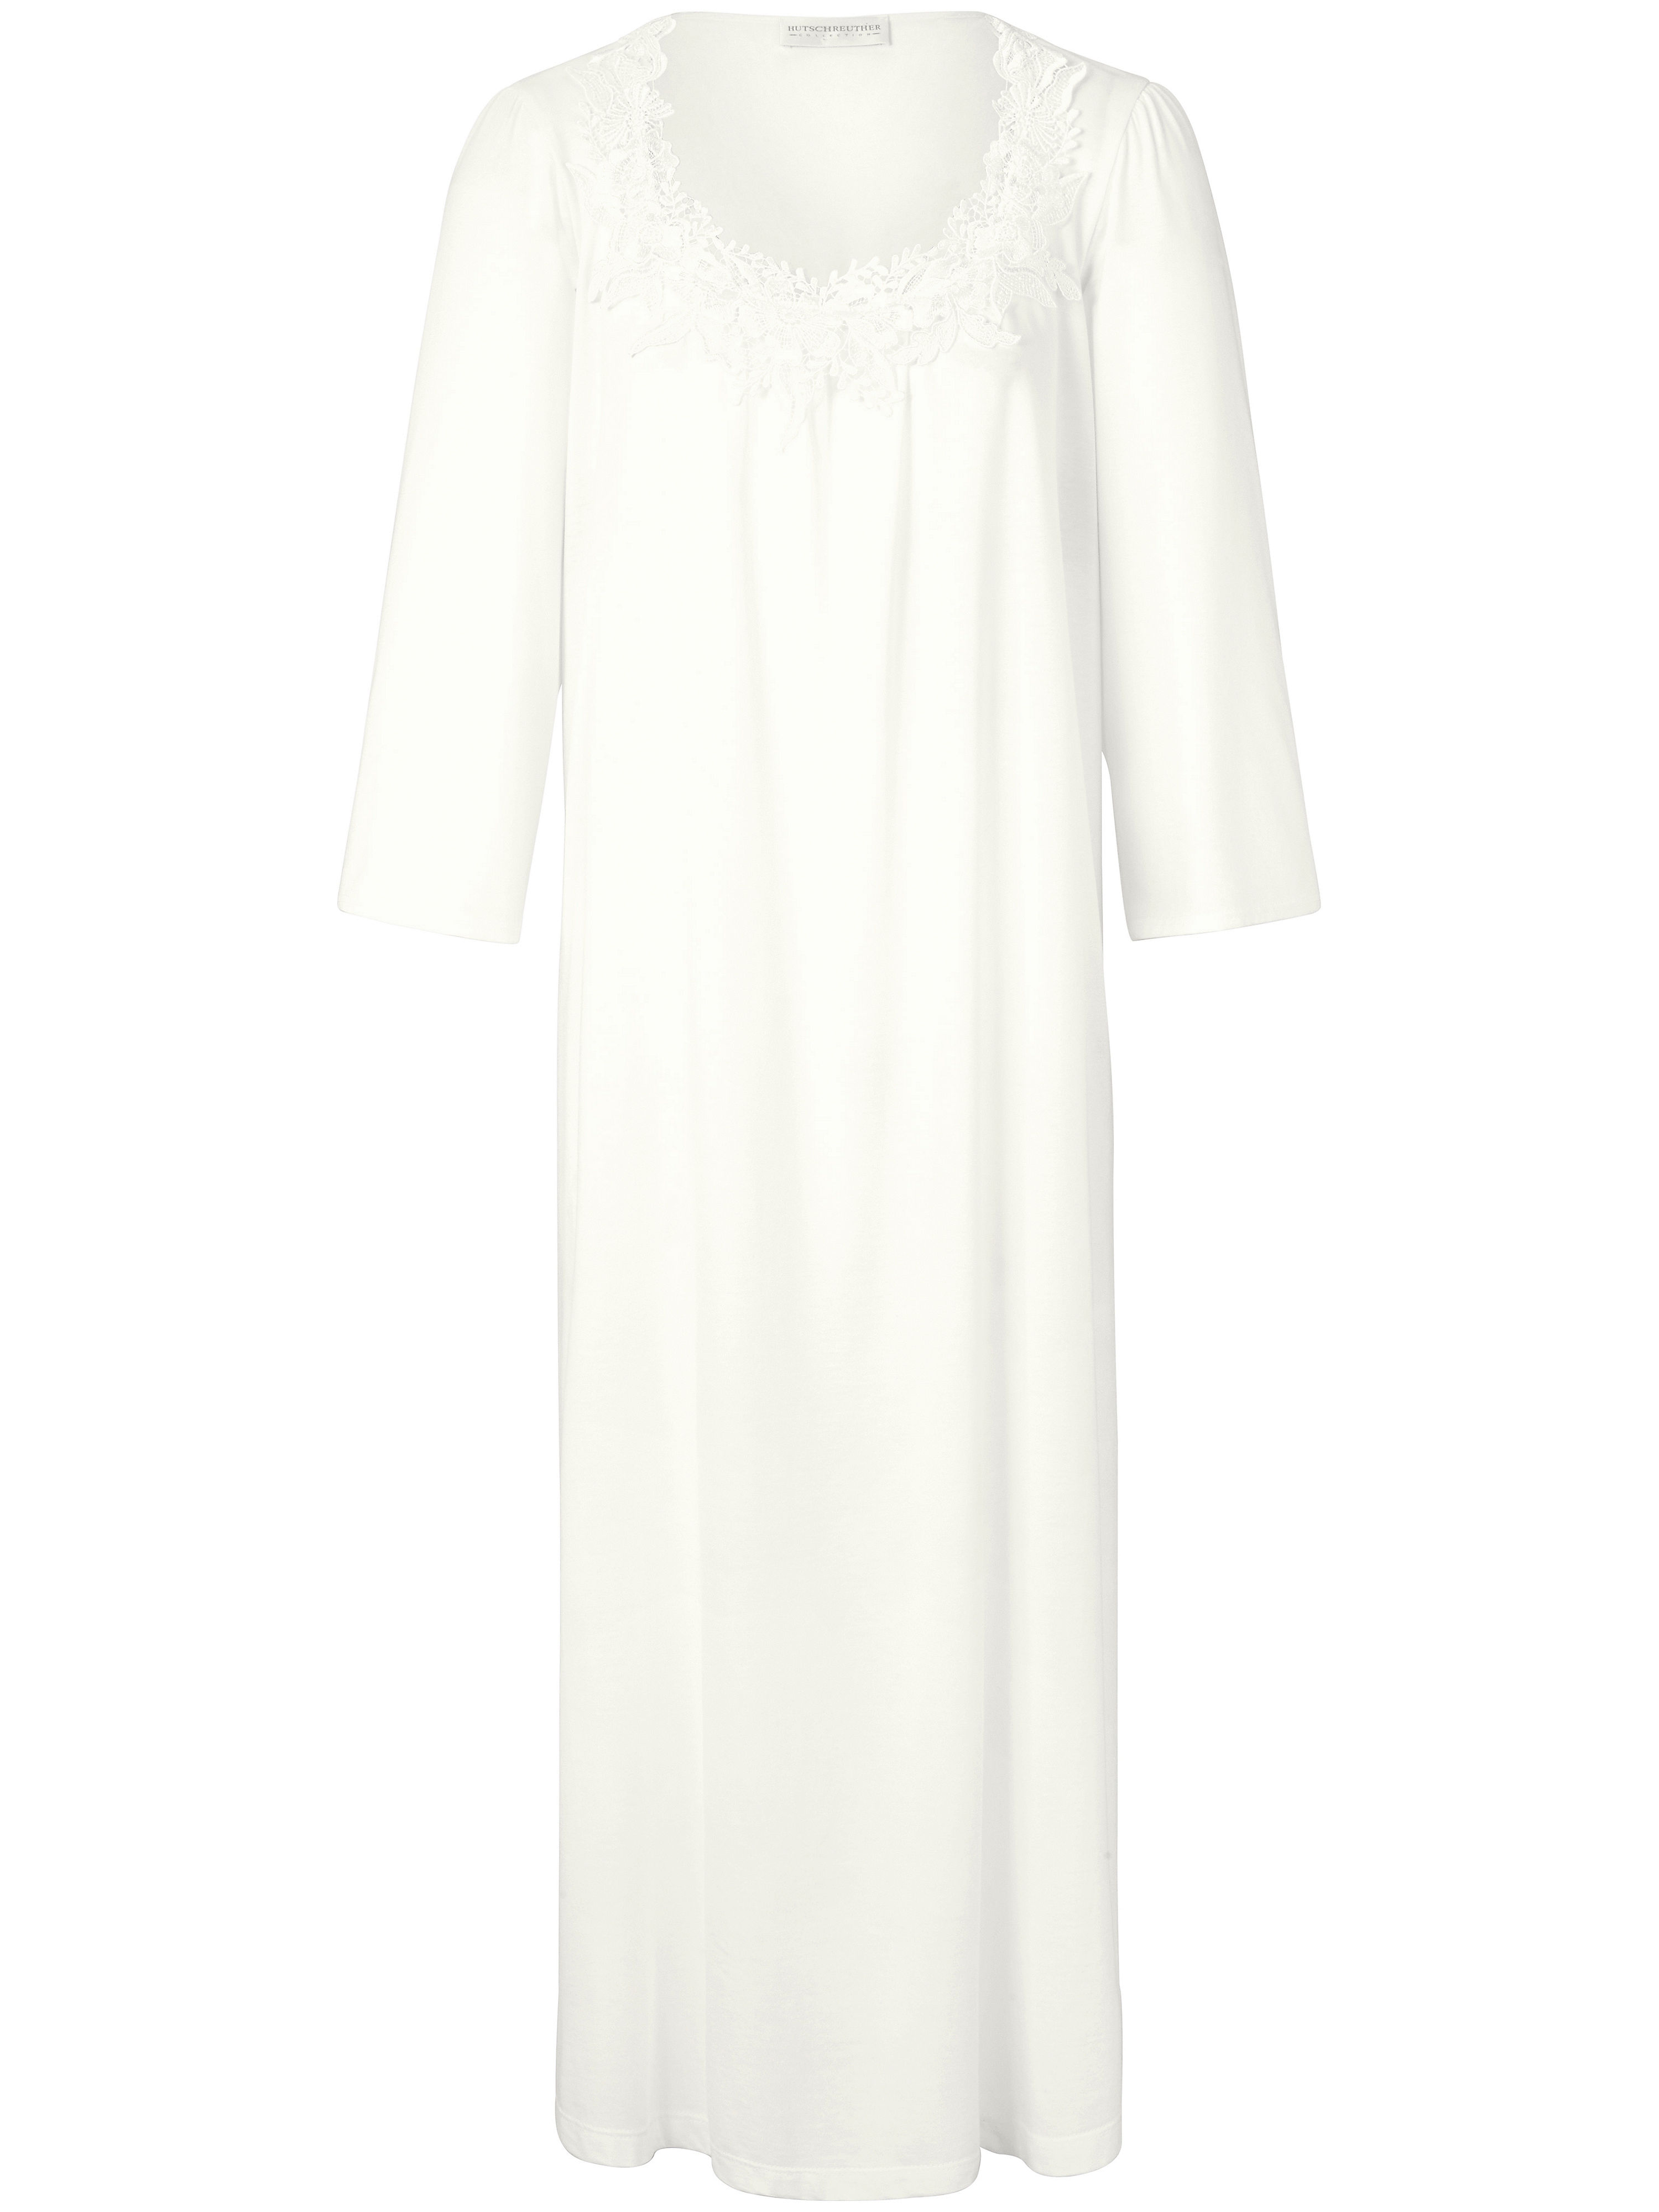 La chemise nuit  Hutschreuther blanc taille 50